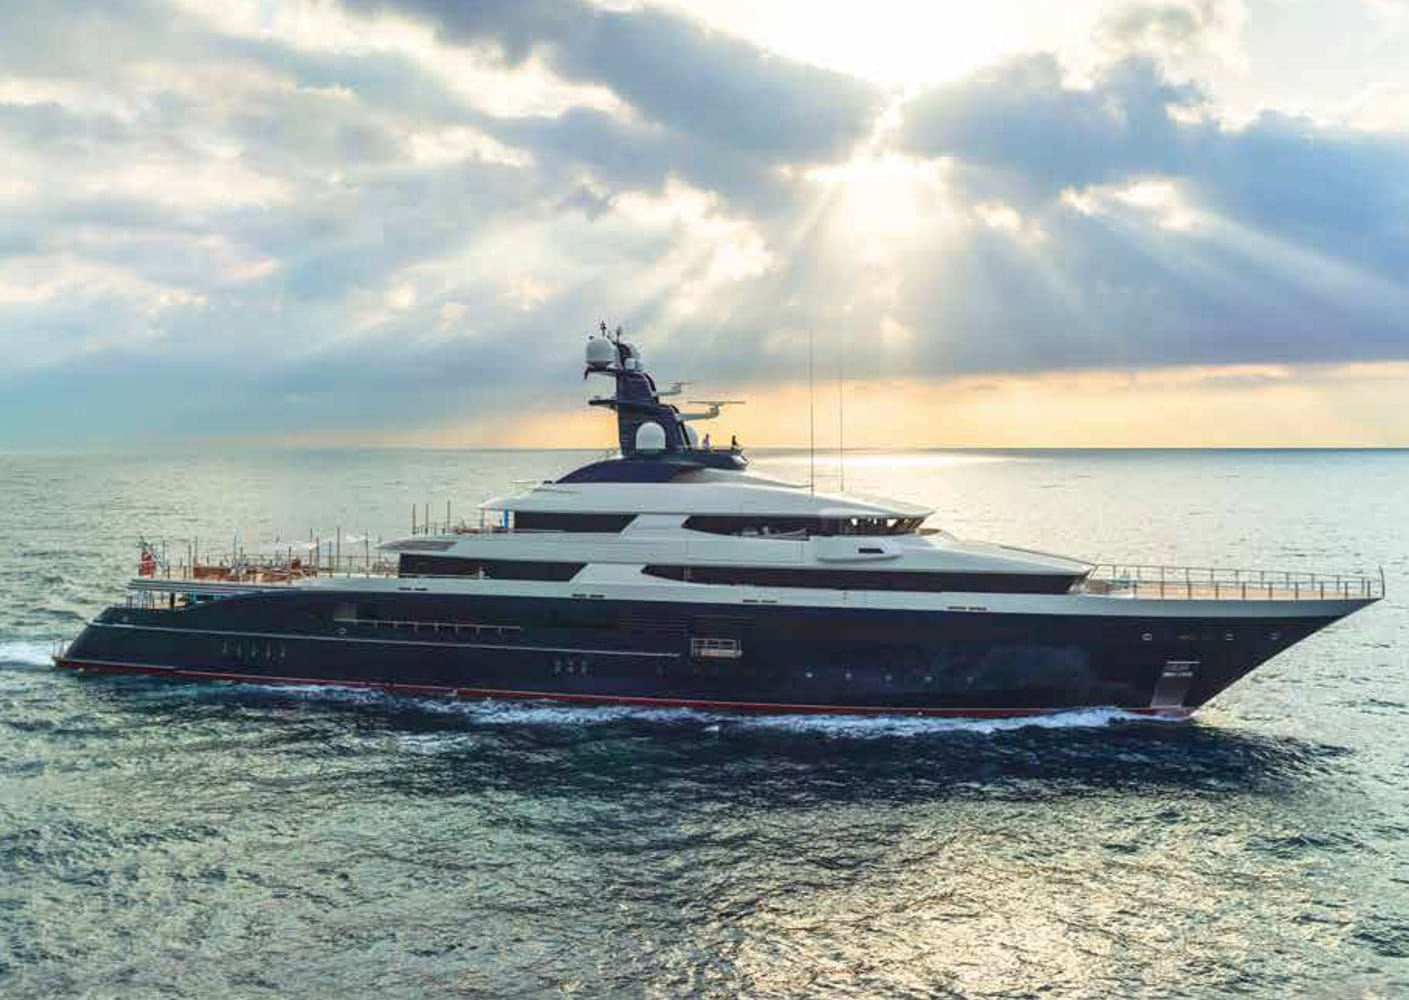 Image of Tranquility 91.5M (300.2FT) motor yacht